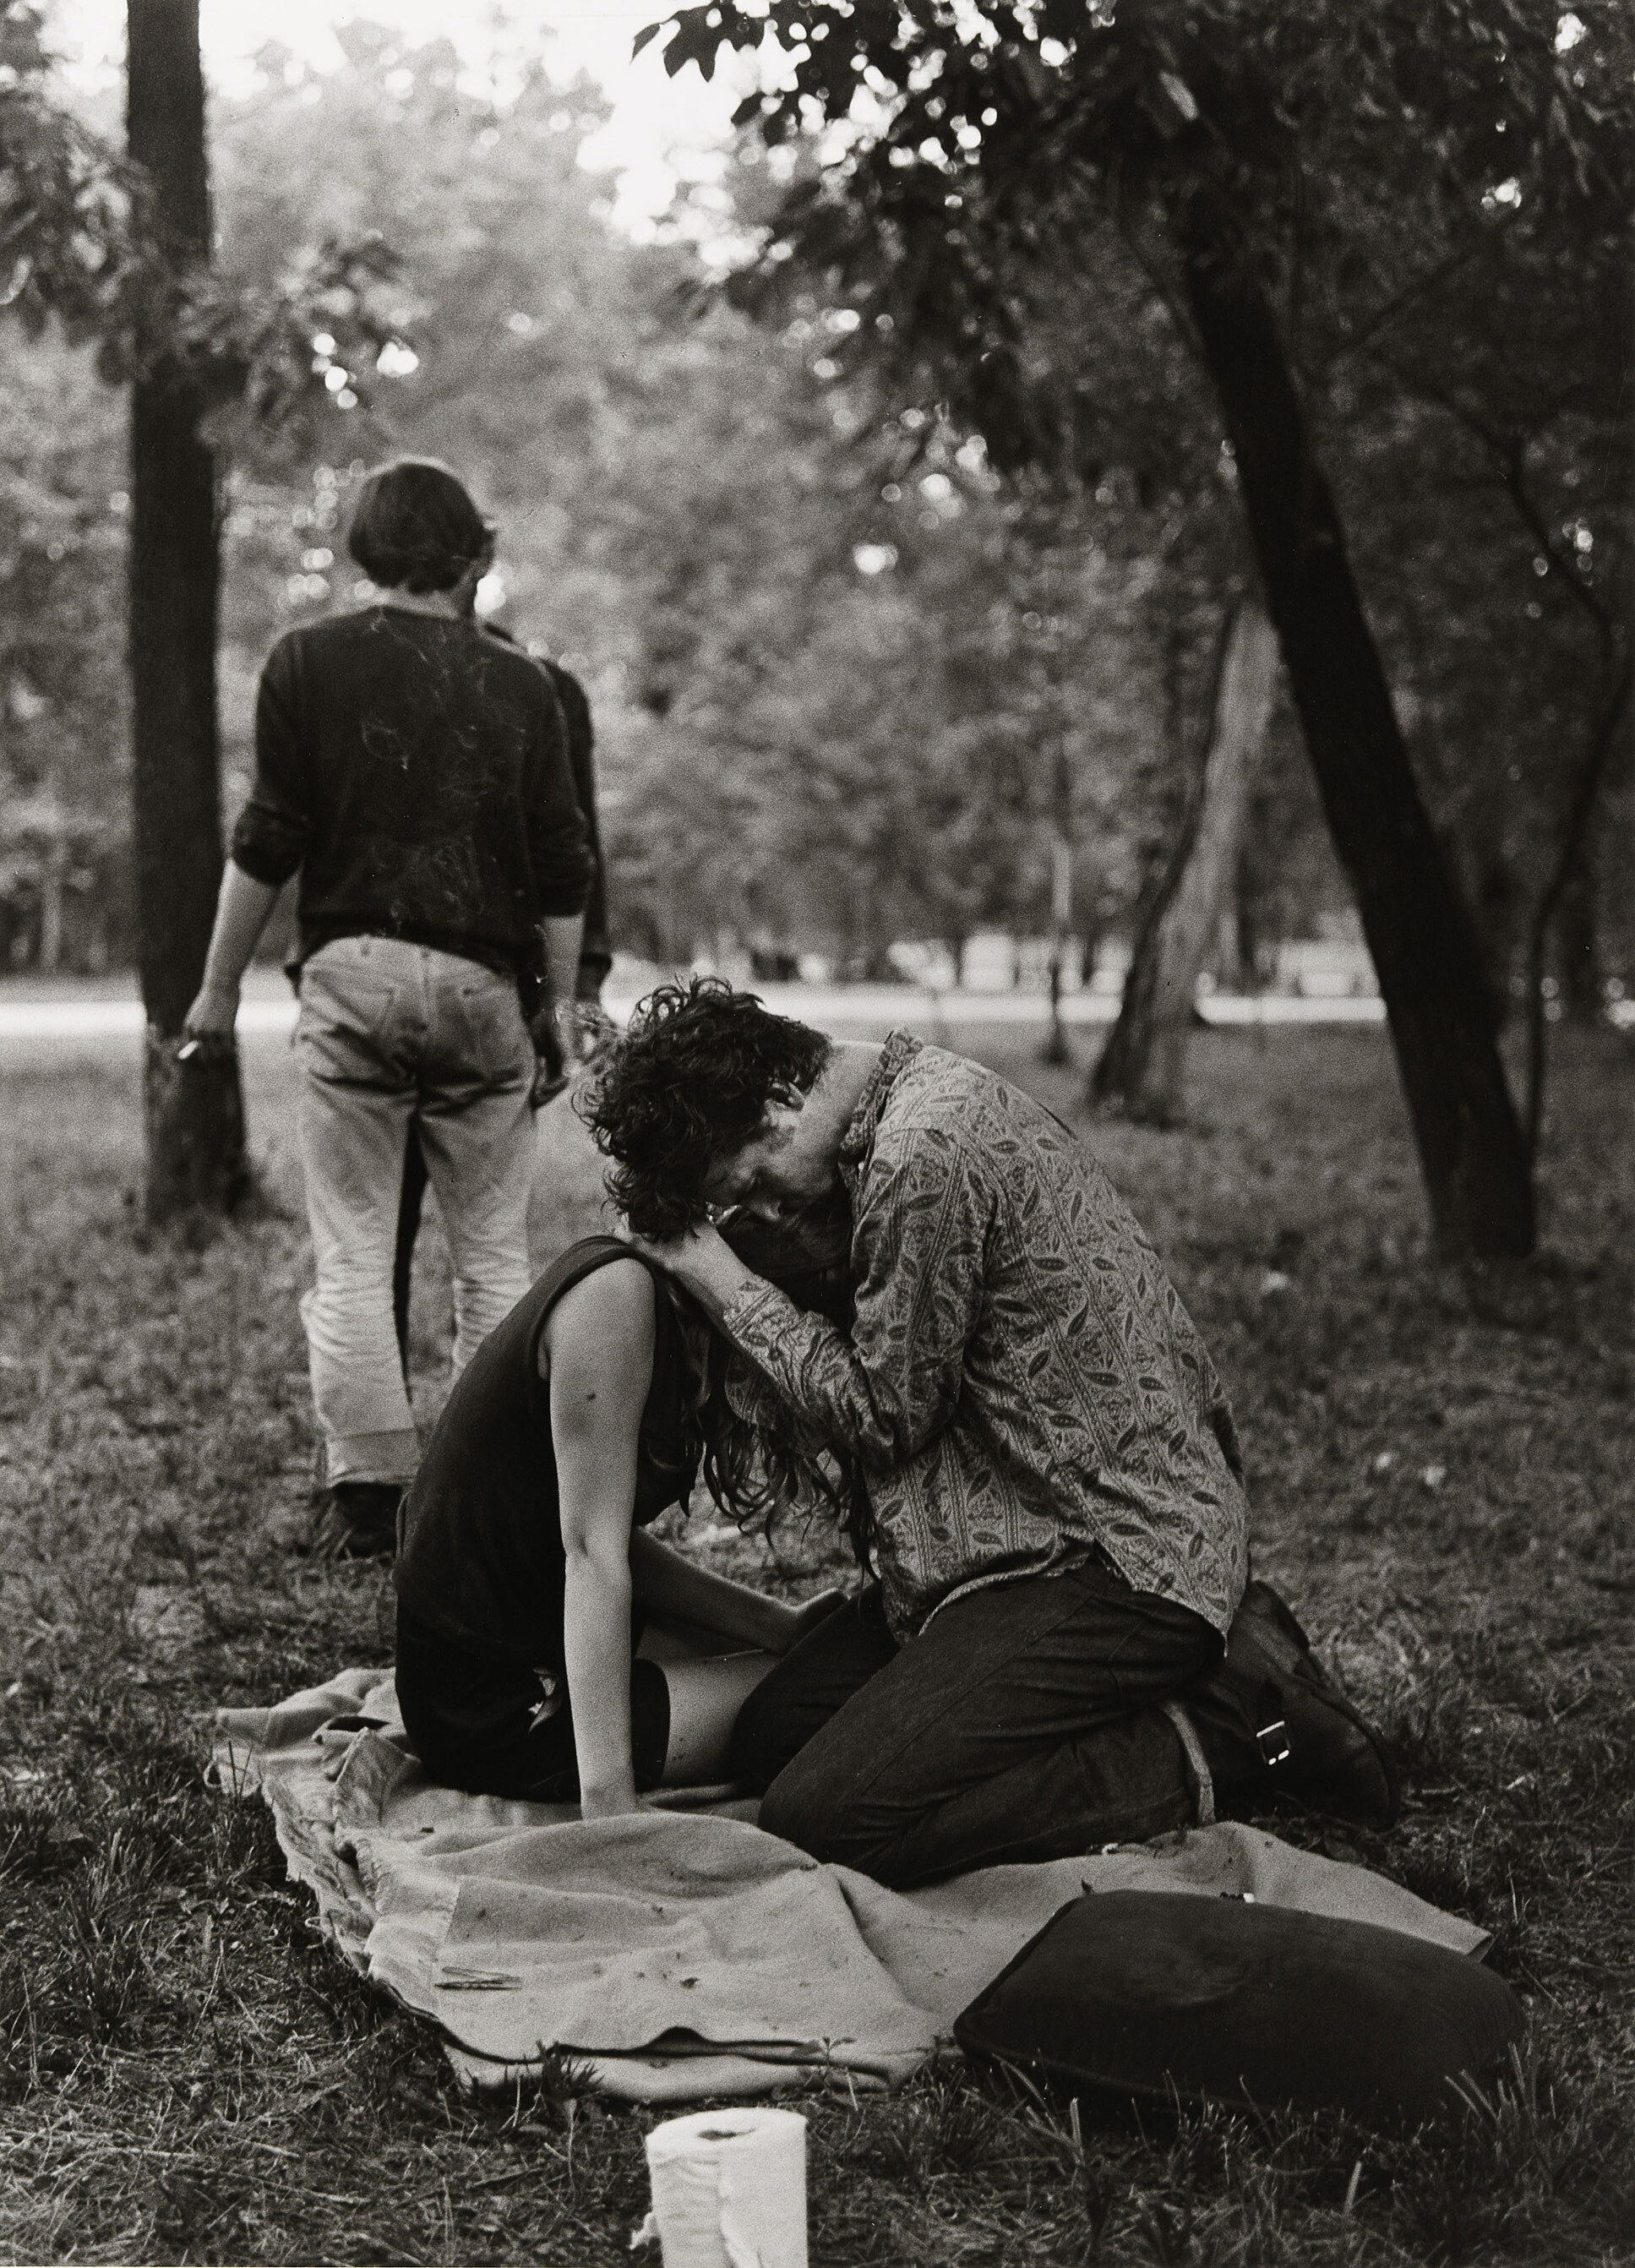 Photograph of Beatniks in a park.